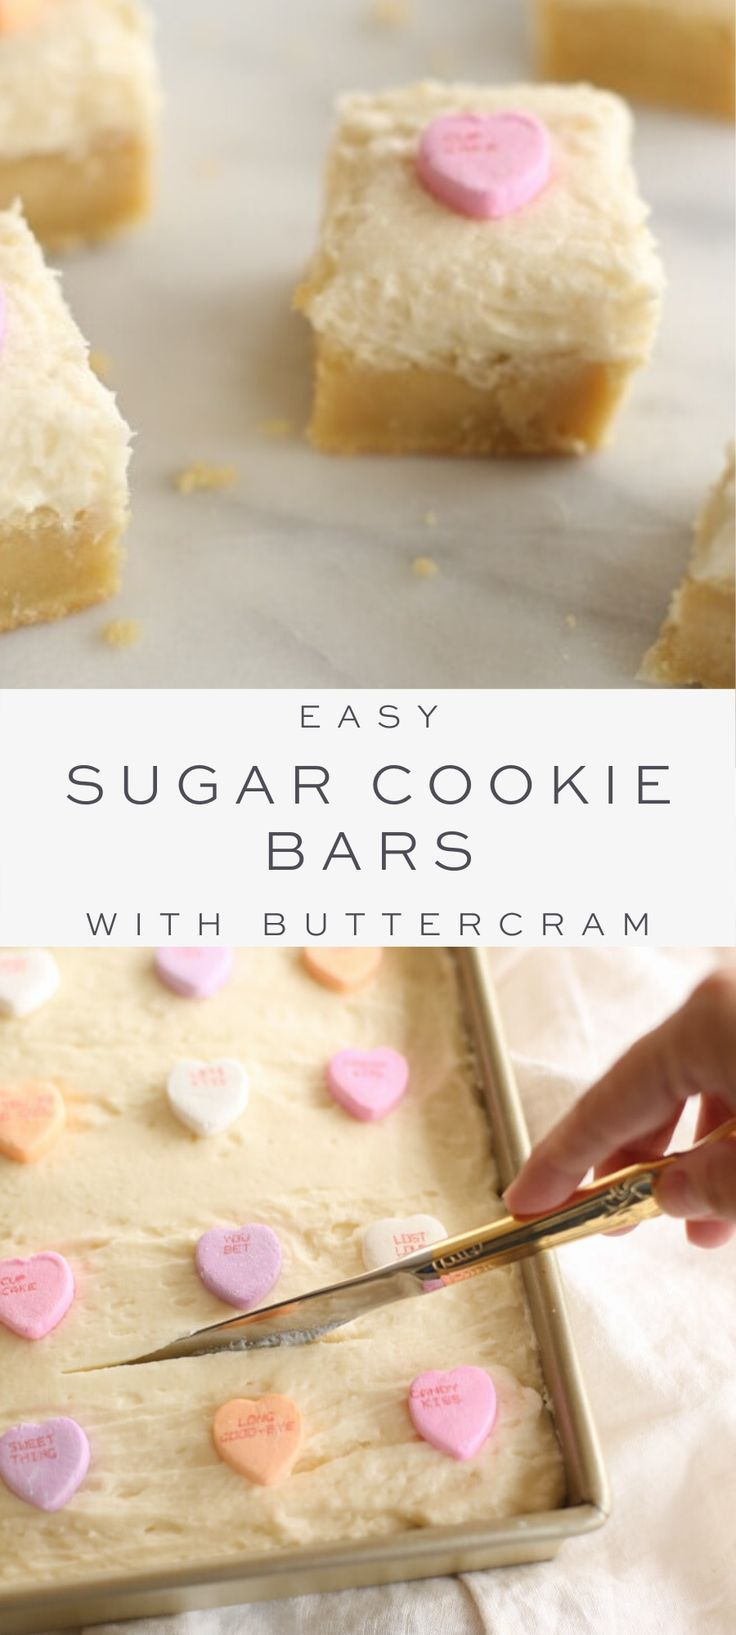 Melt in Your Mouth Sugar Cookie Bars with Buttercream Icing